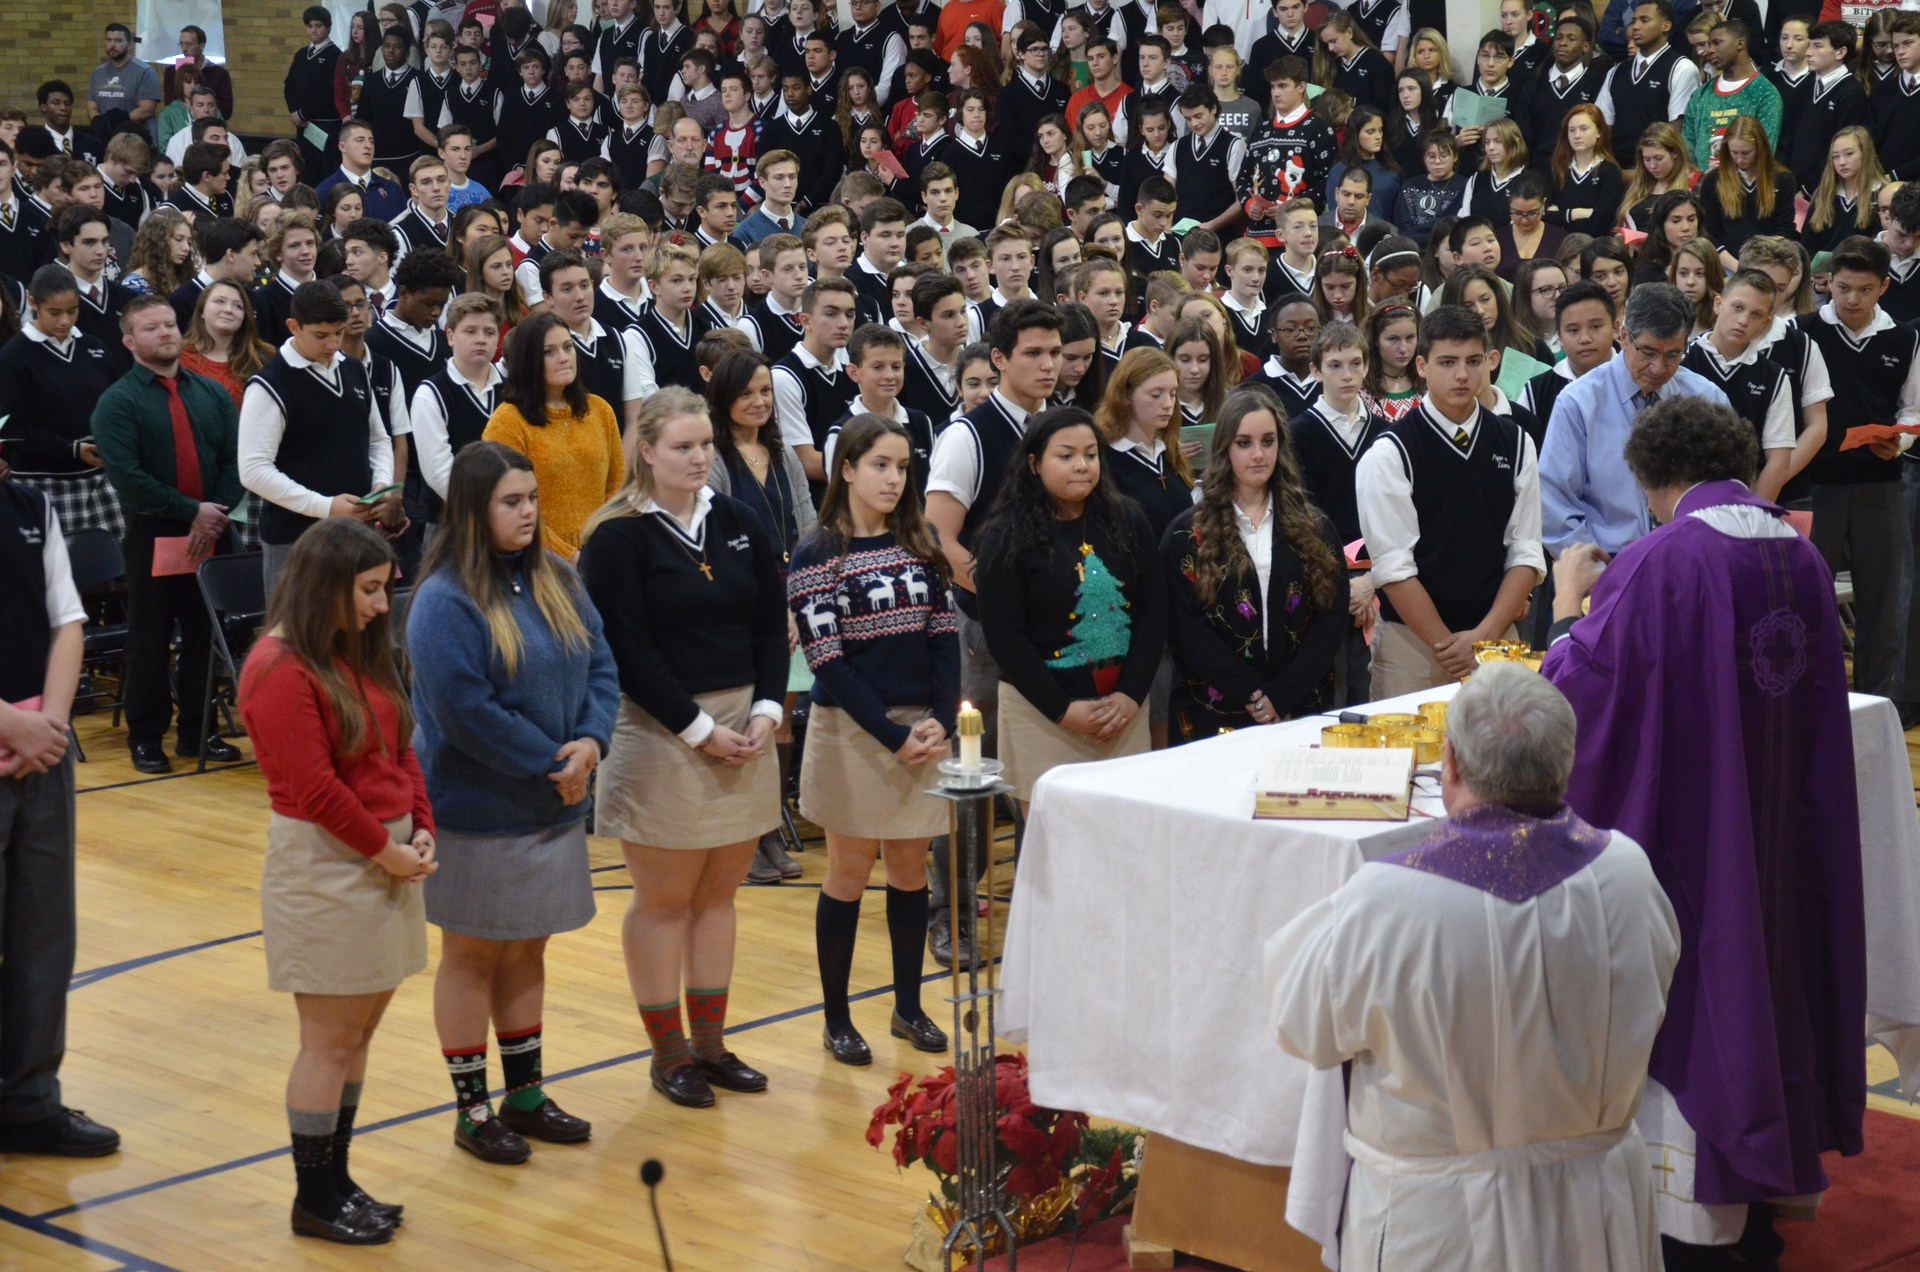 Students surround altar during mass